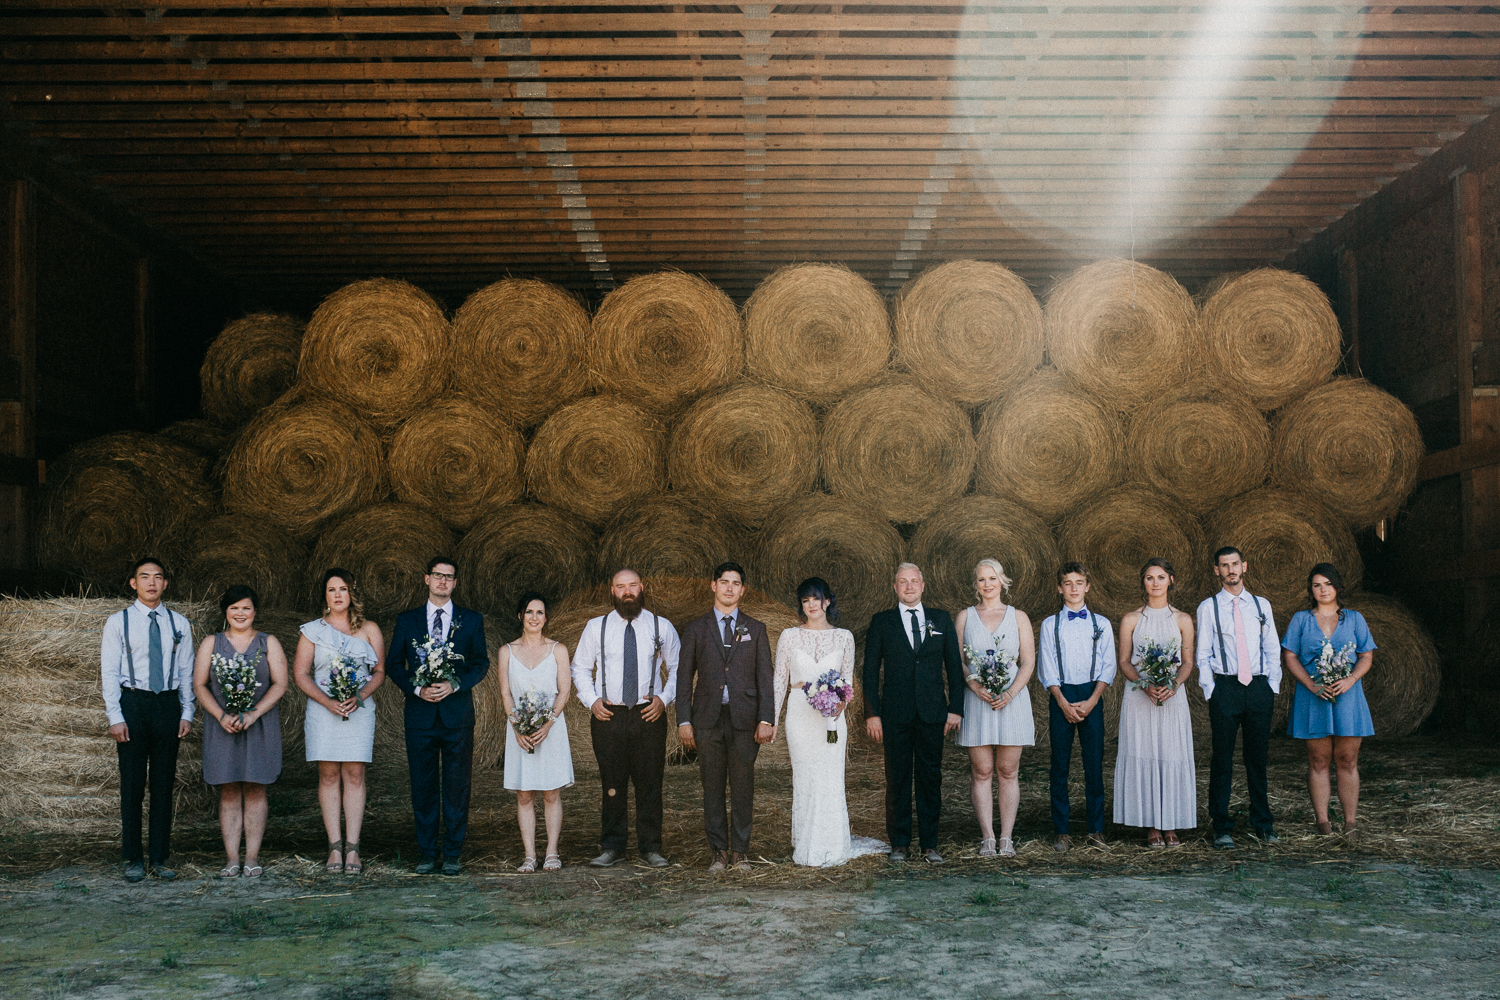 Bridal party in barn Pemberton Farm wedding